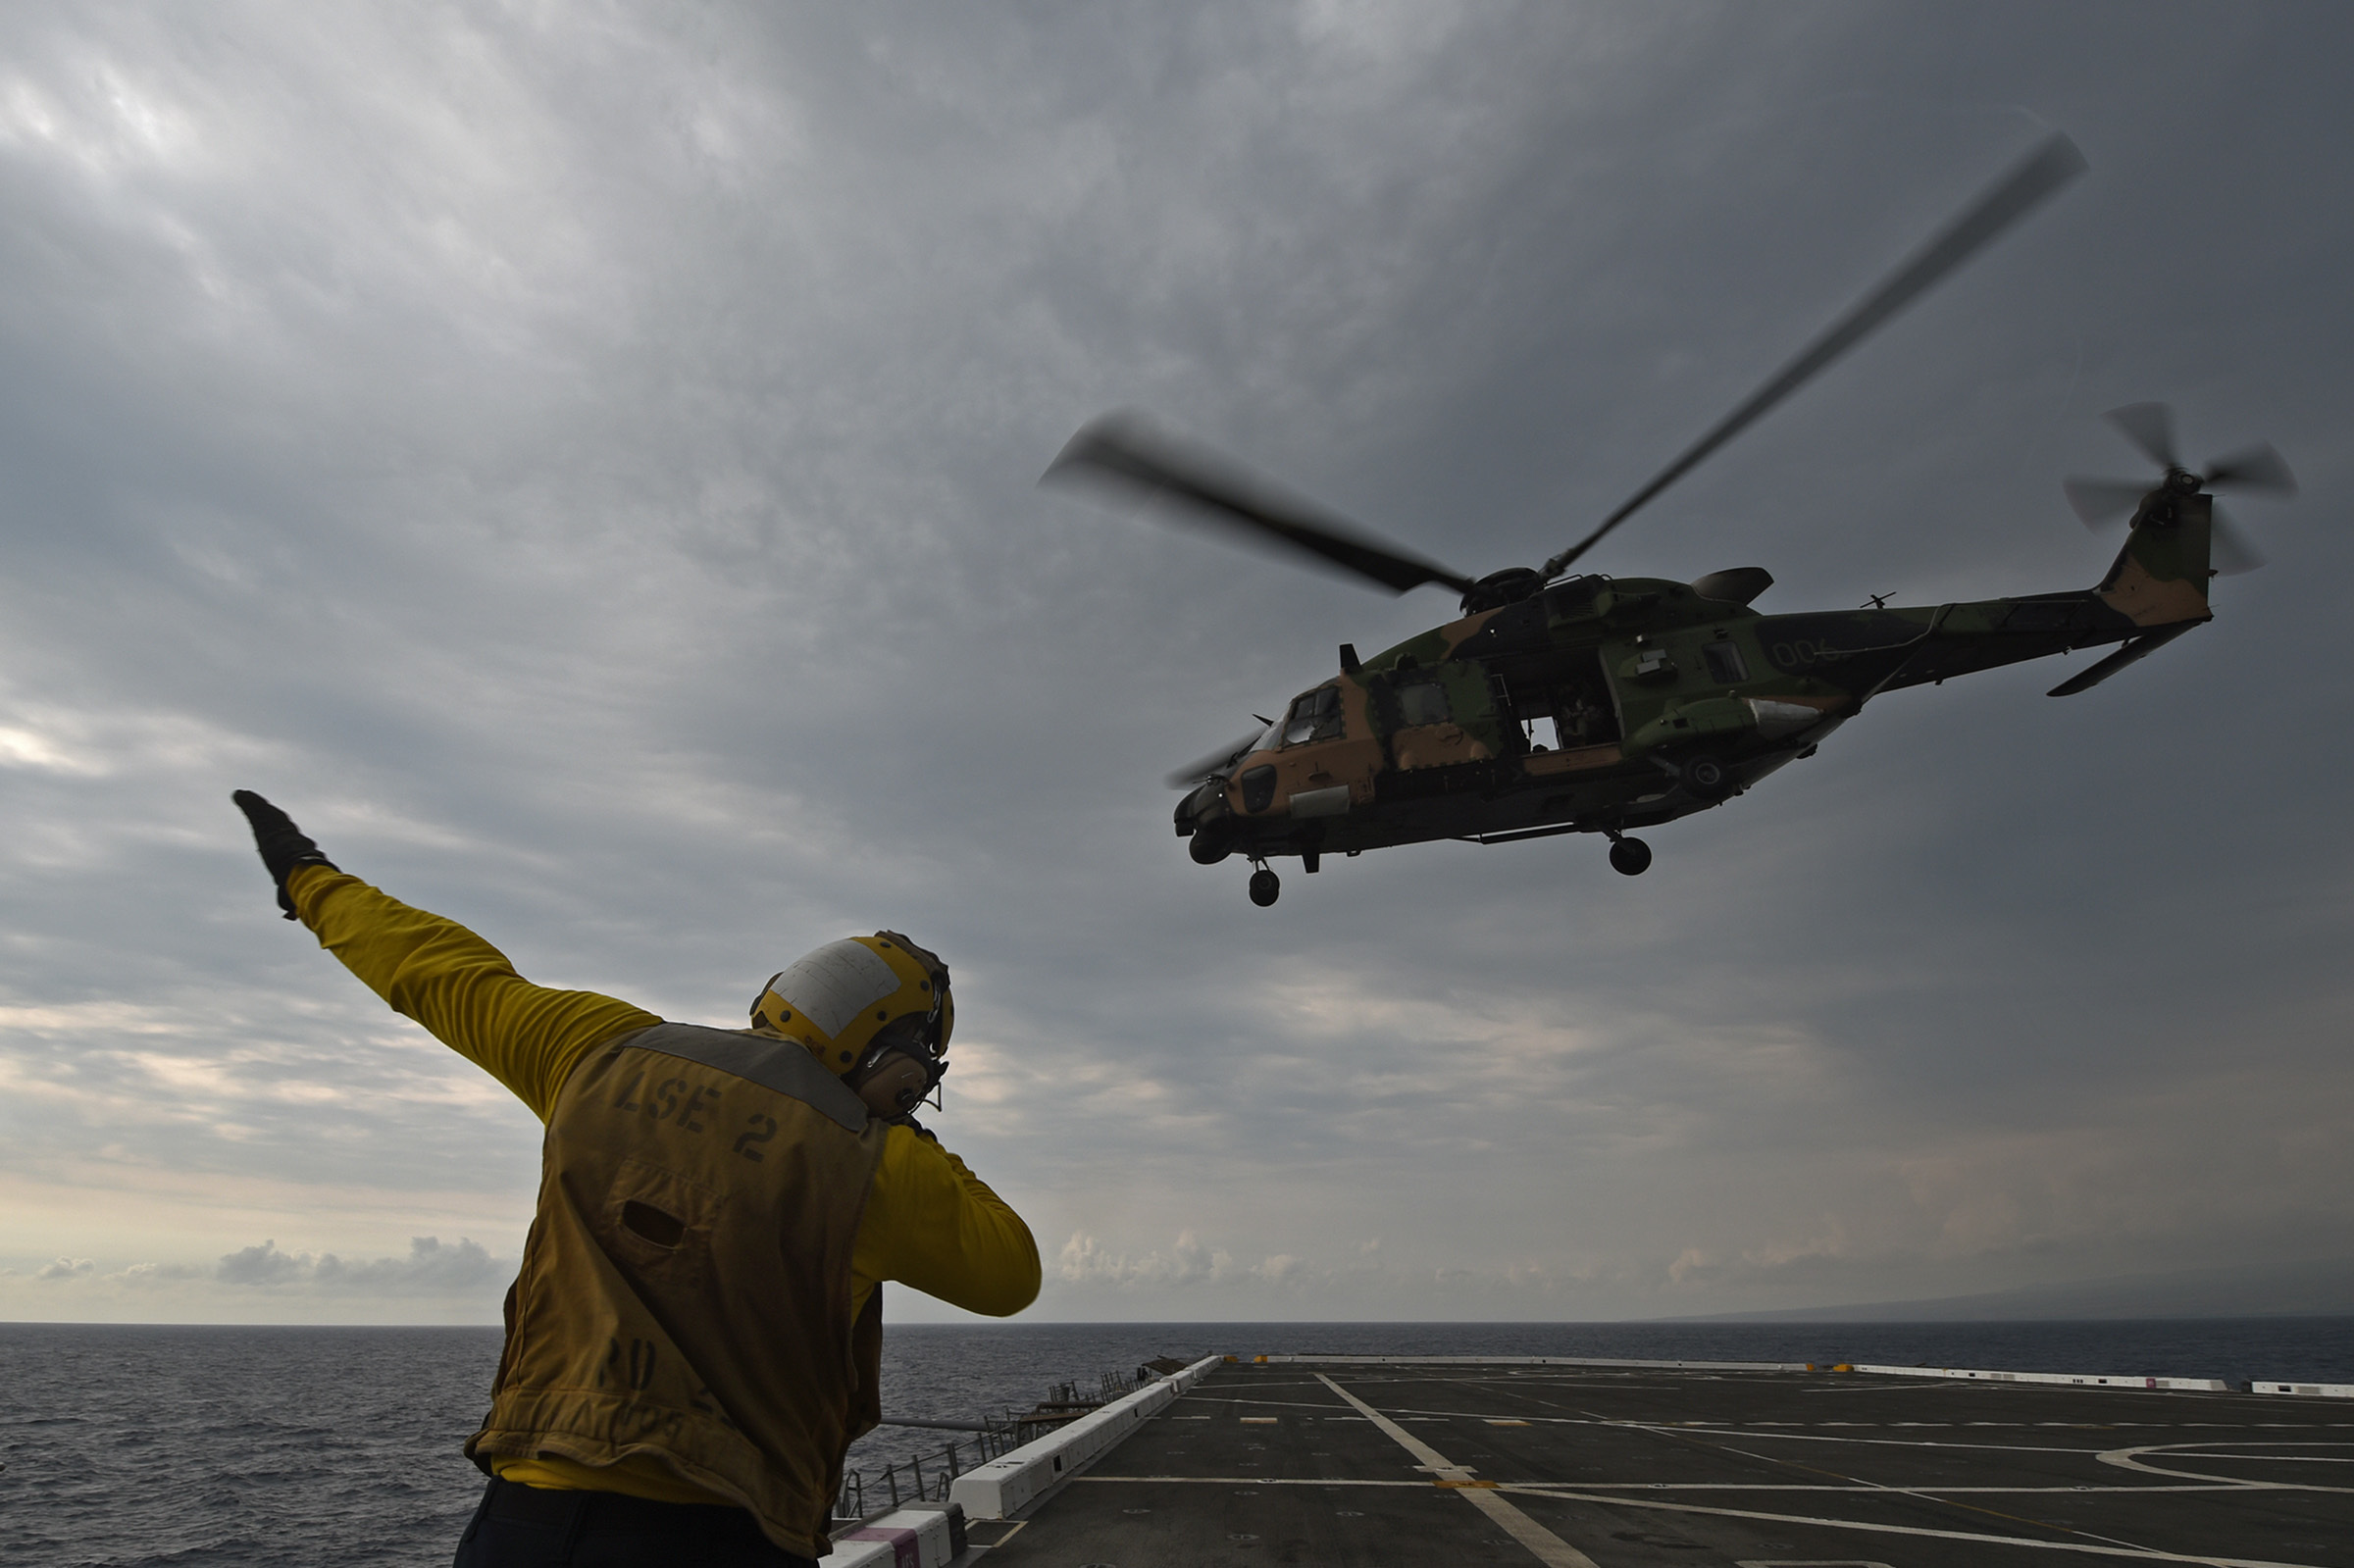 Aviation Boatswain's Mate (handling) Airman Joshua Evans signals a Royal Australian Navy MRH-90 Taipan to enter the pattern above the flight deck of amphibious transport dock ship USS San Diego (LPD 22) during interoperability testing in Rim of the Pacific 2016. US Navy photo.